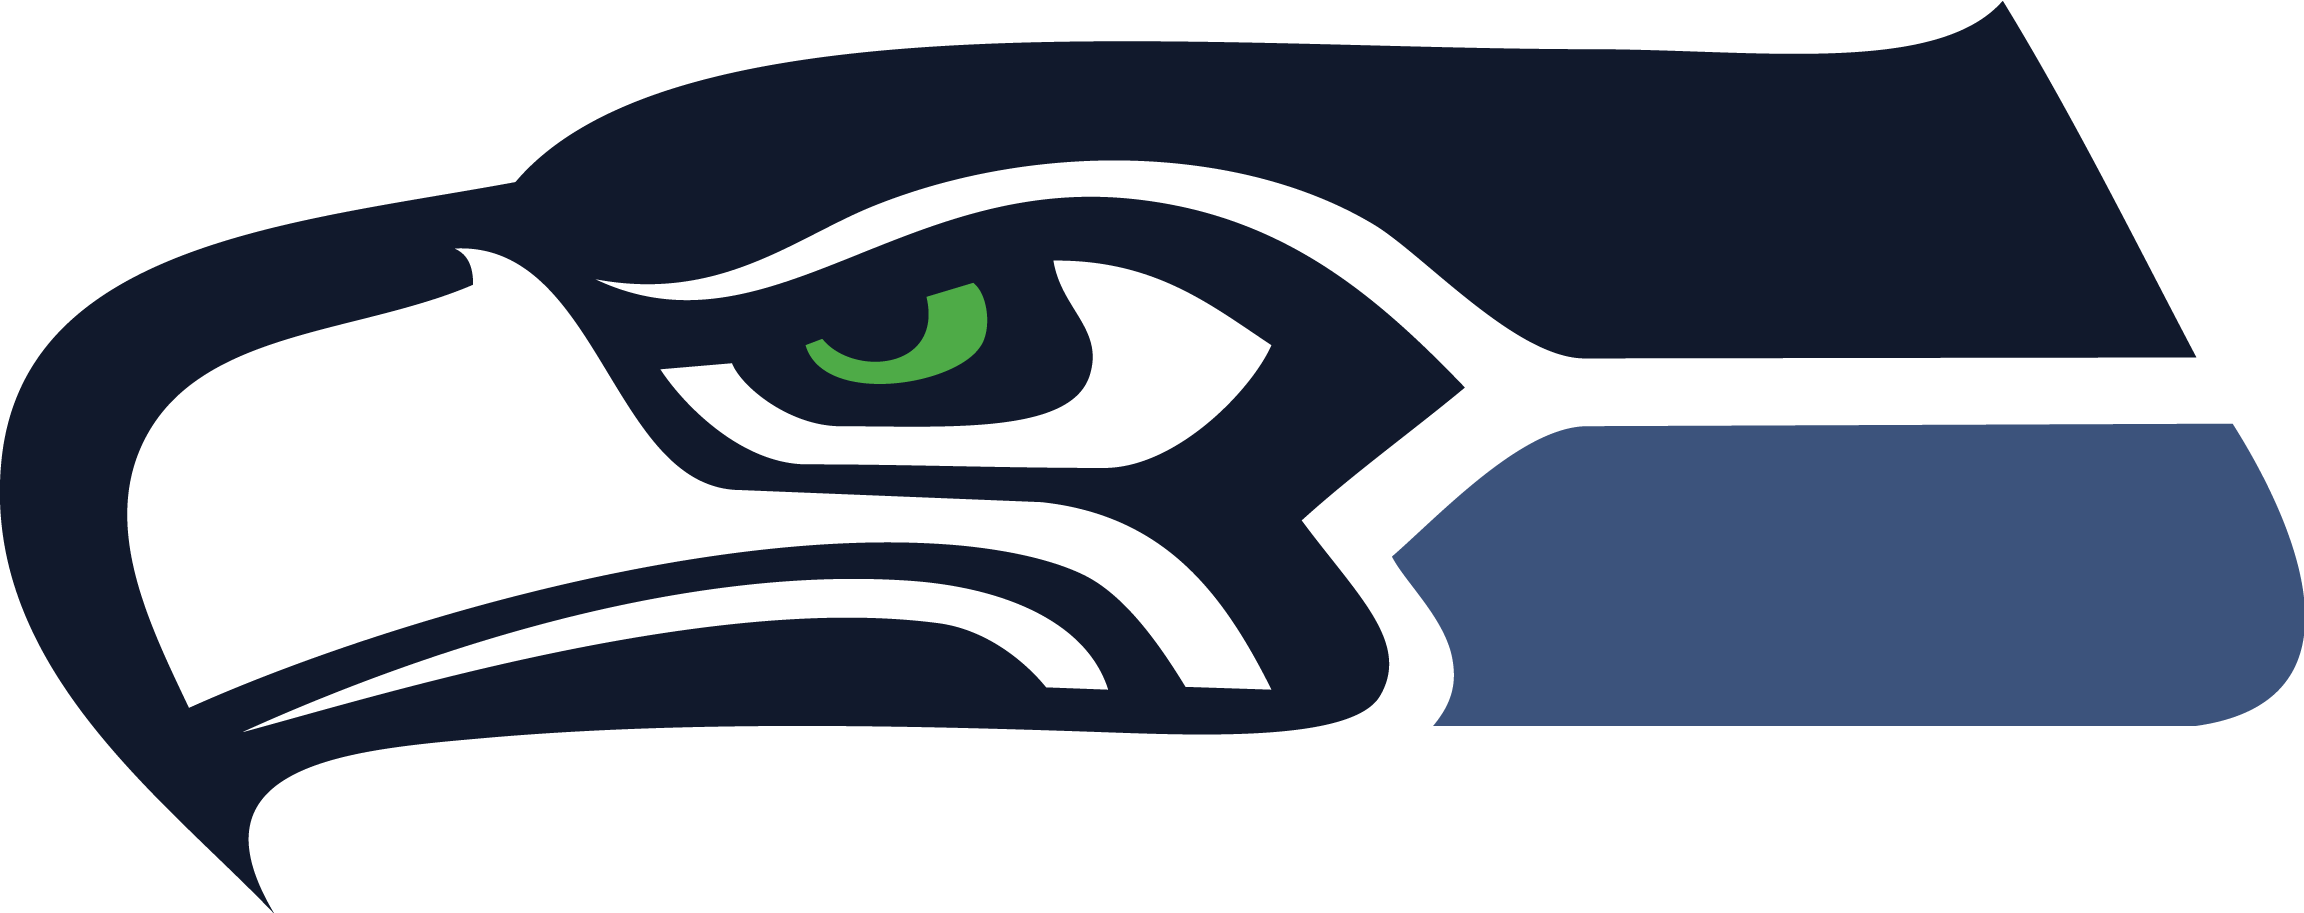 Football Seahawks Logo Images Clip Art Library